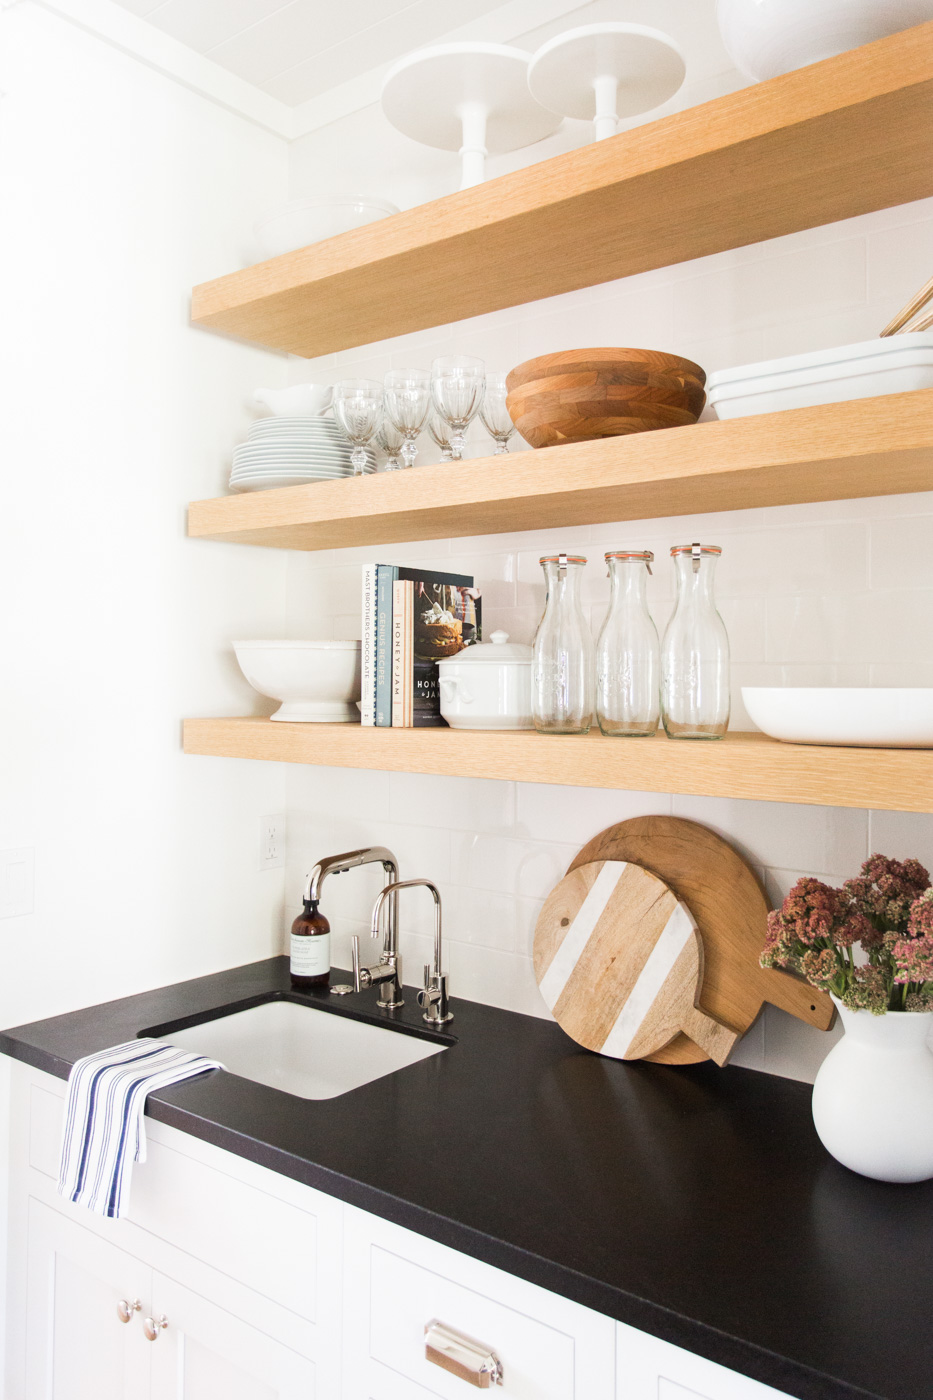 Butler's+Pantry++with+wood+floating+shelves+||+Studio+McGee.jpg